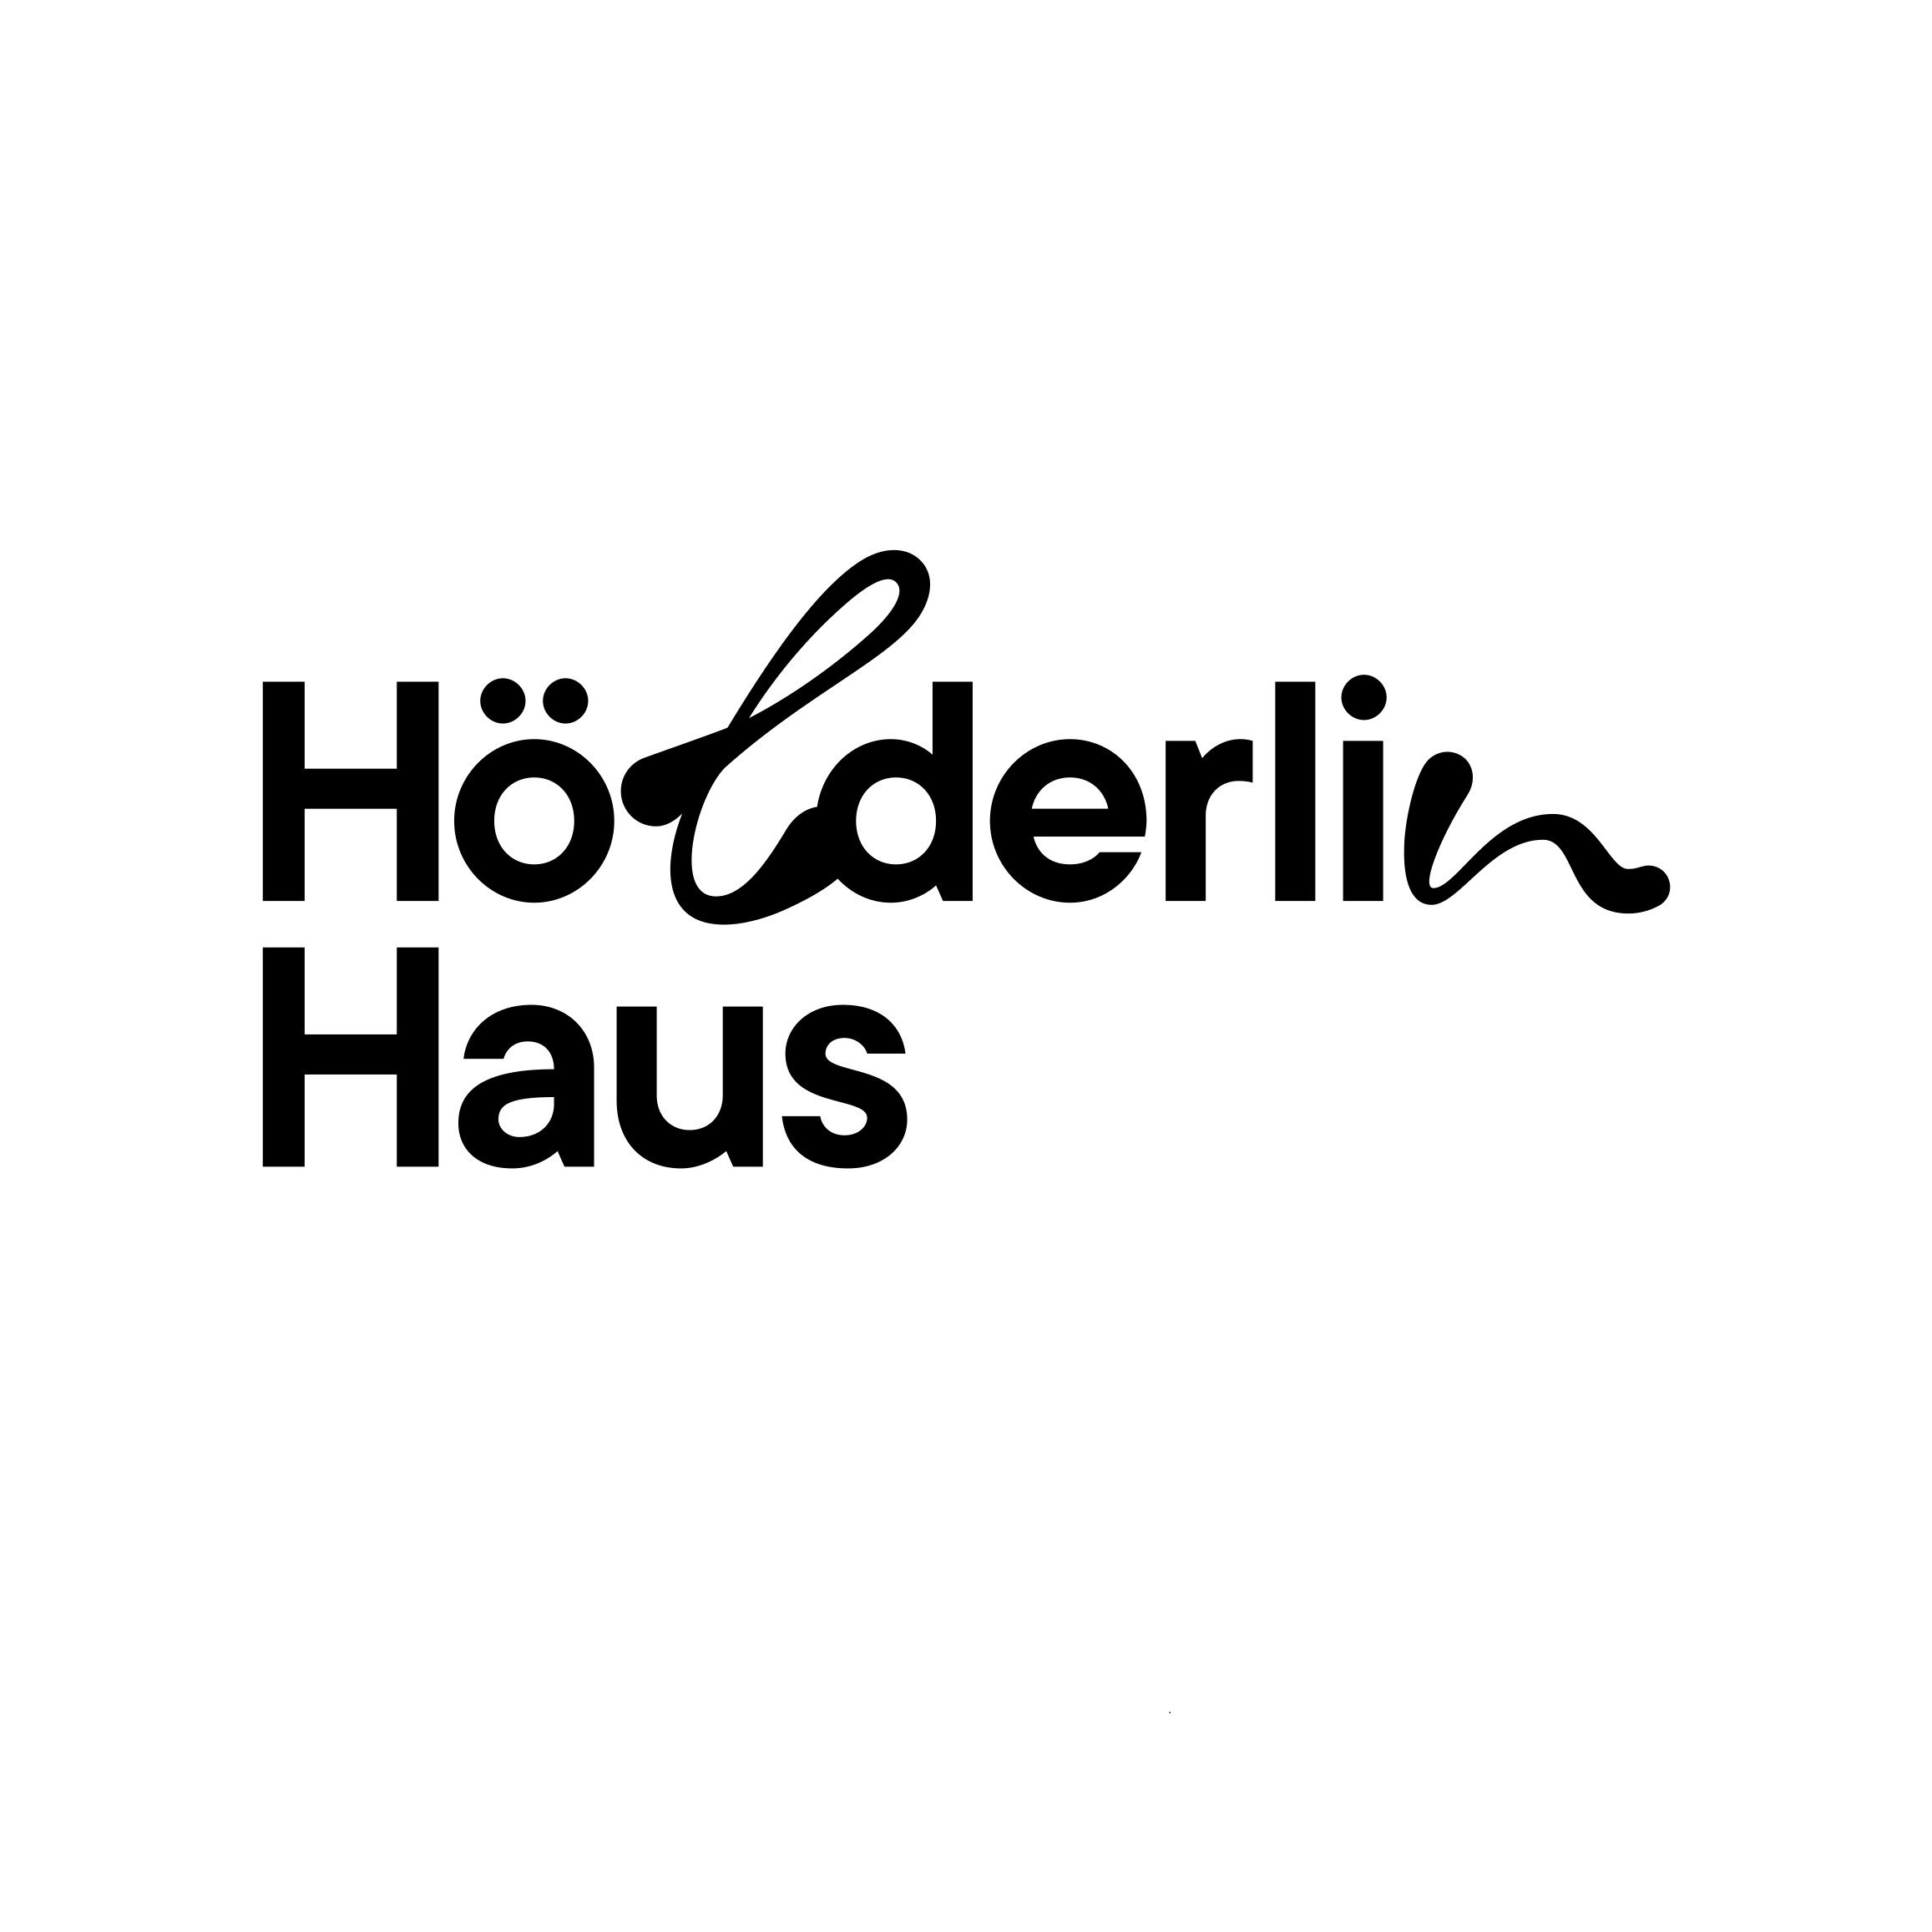 Hölderlinhaus